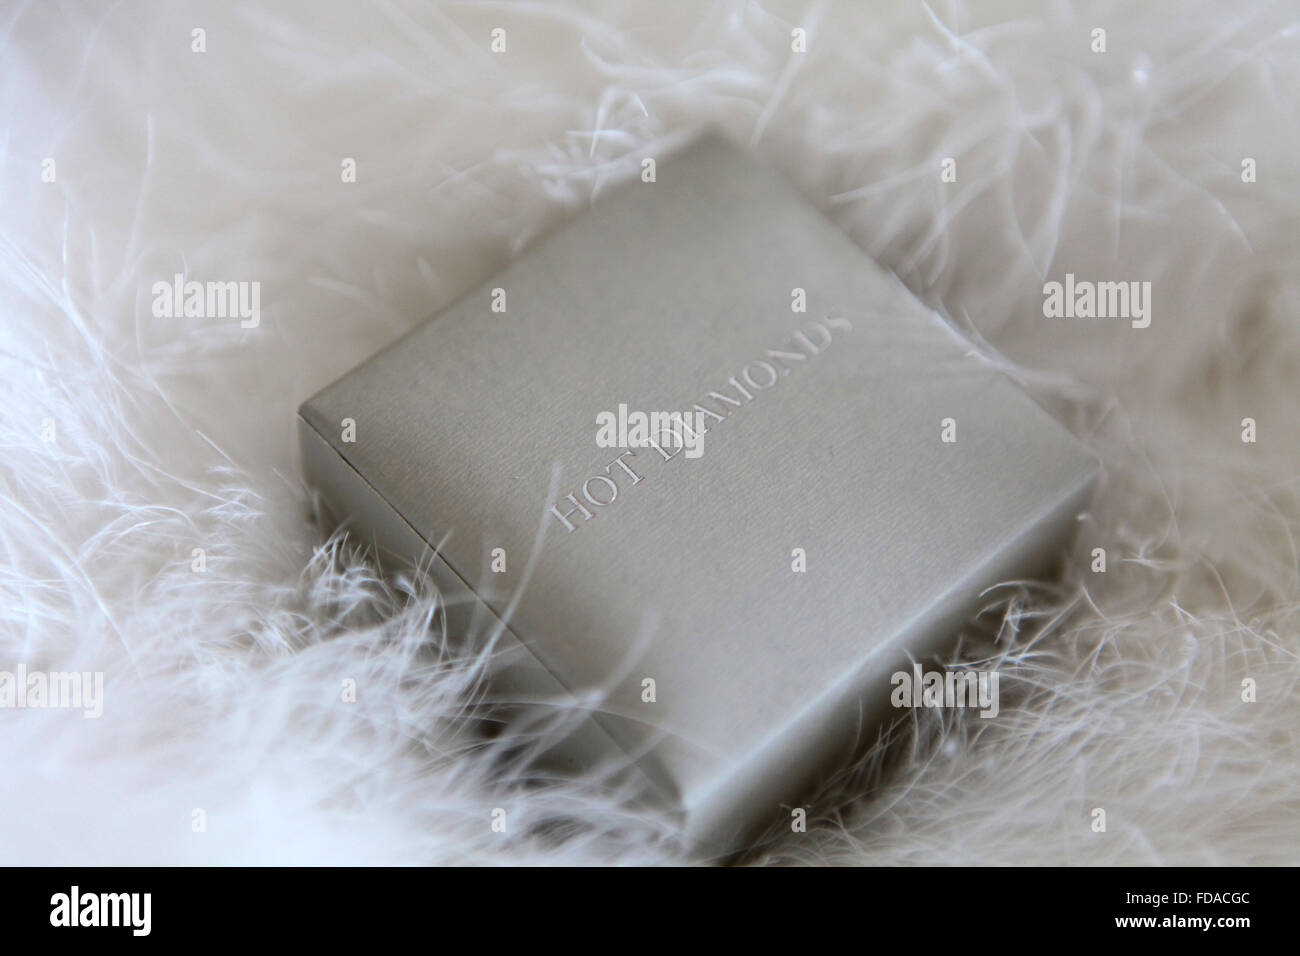 Diamond ring in a silver box on white feathers - Stock Image